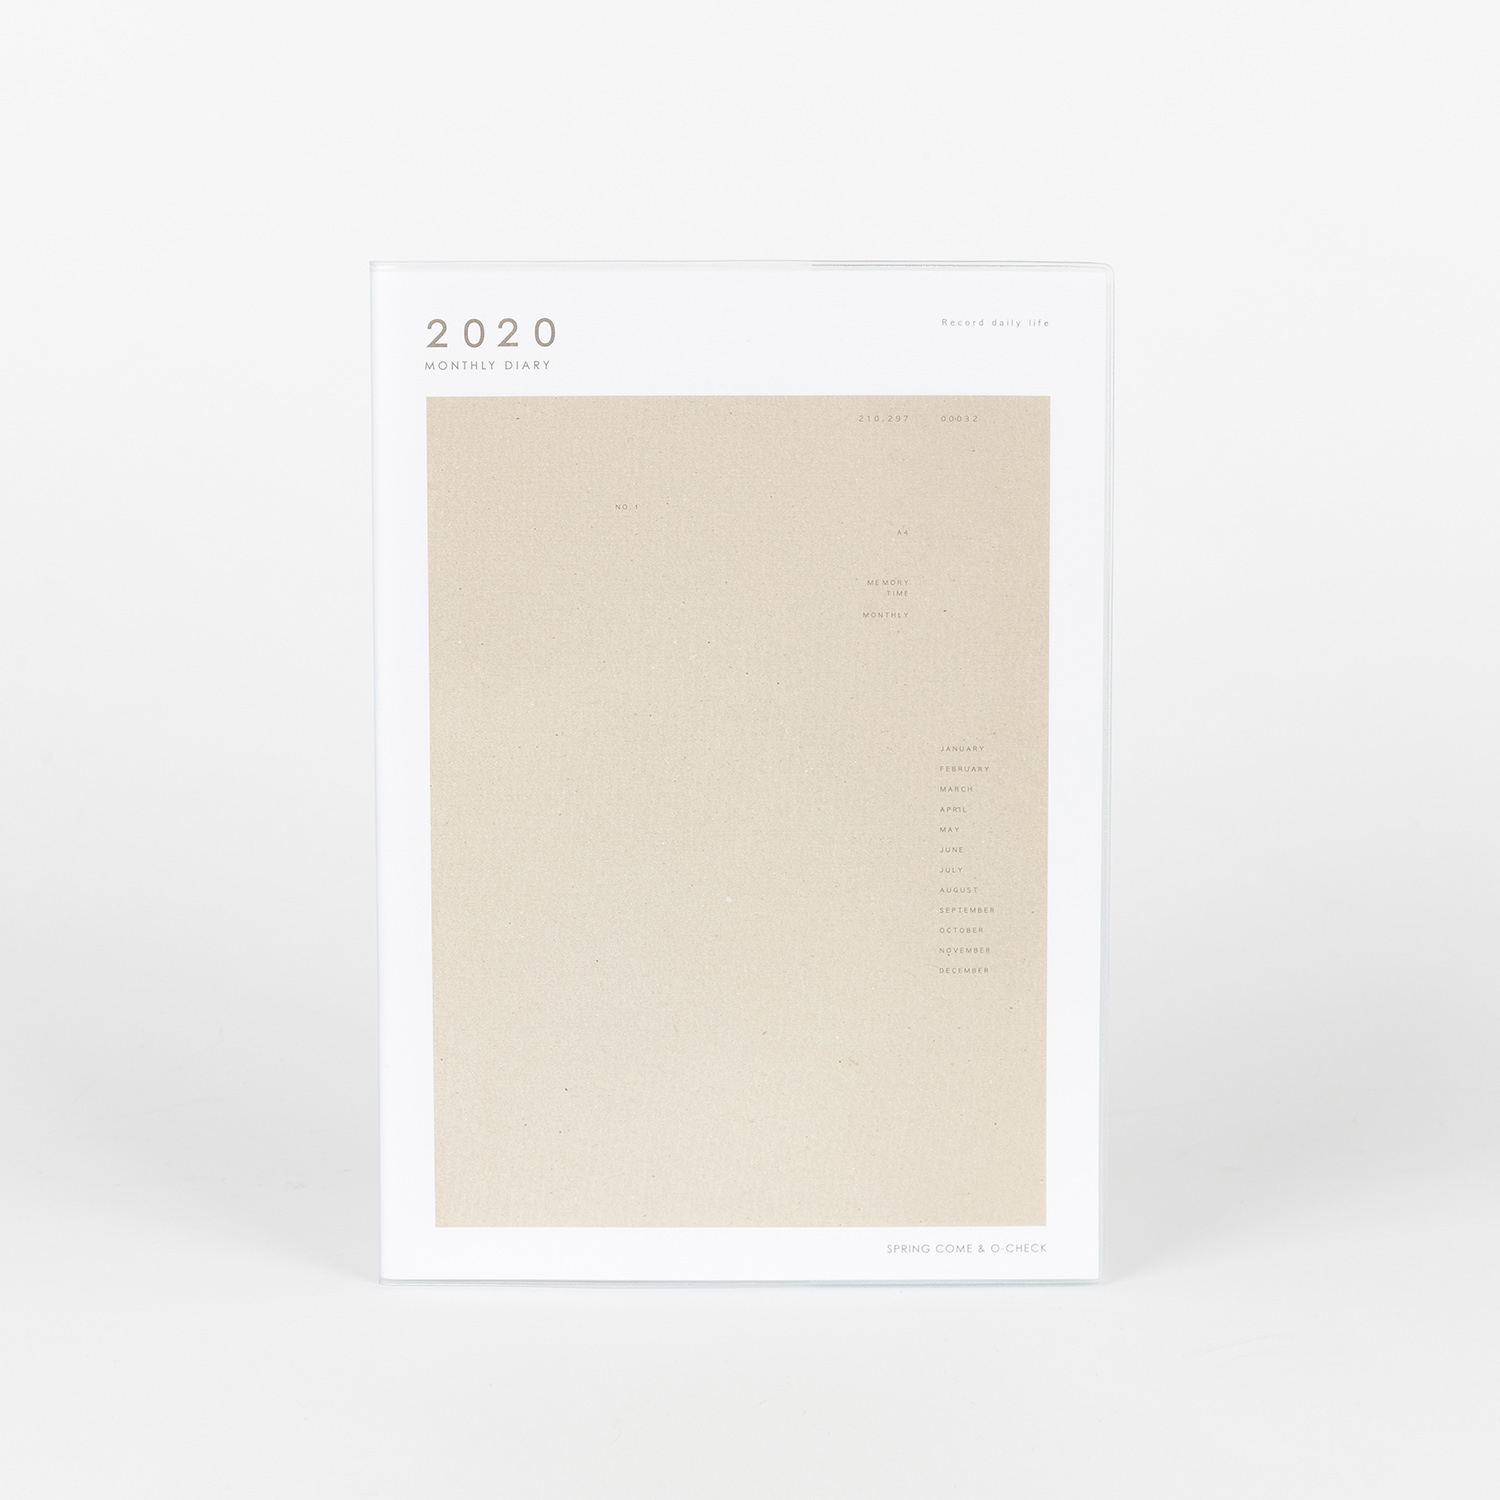 2020 MONTHLY PLANNER